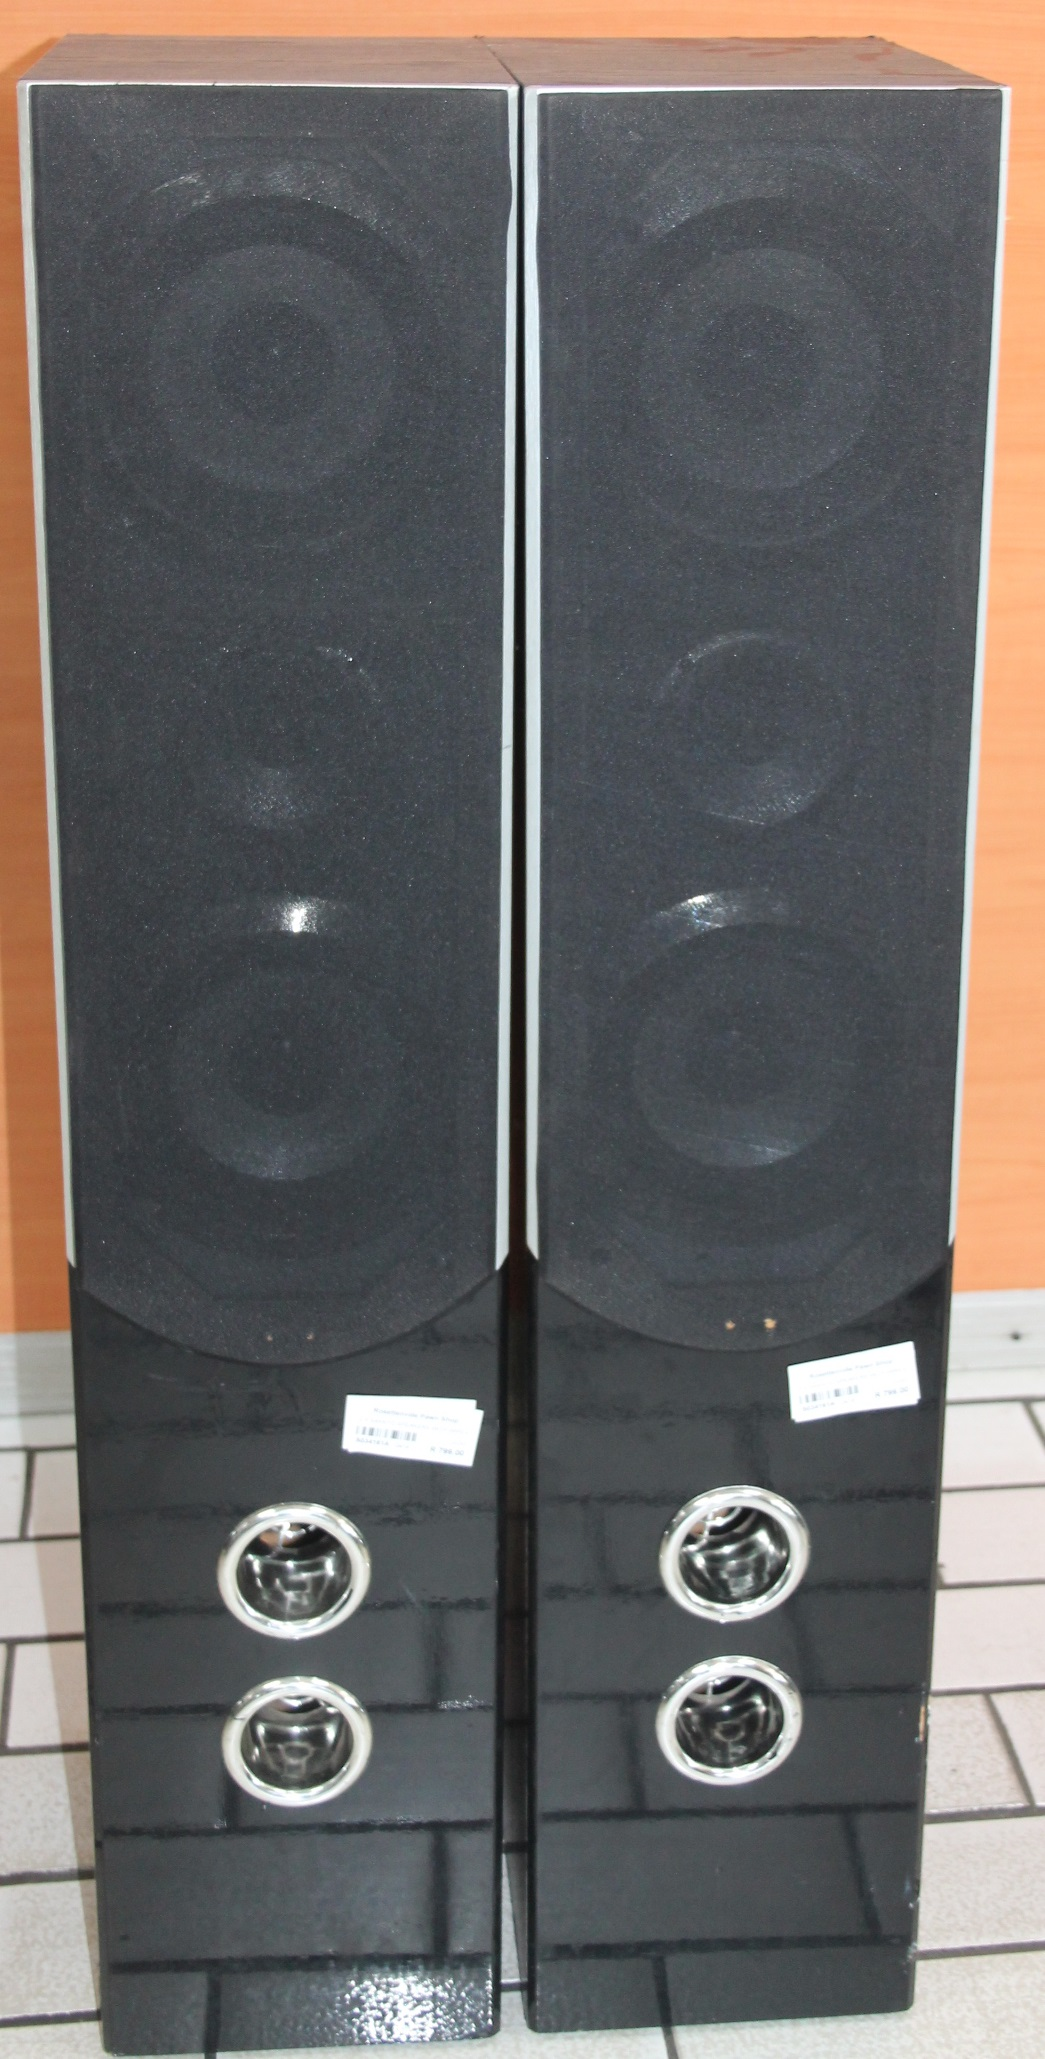 S034161A 2 x Saknyo speakers with wires #Rosettenvillepawnshop